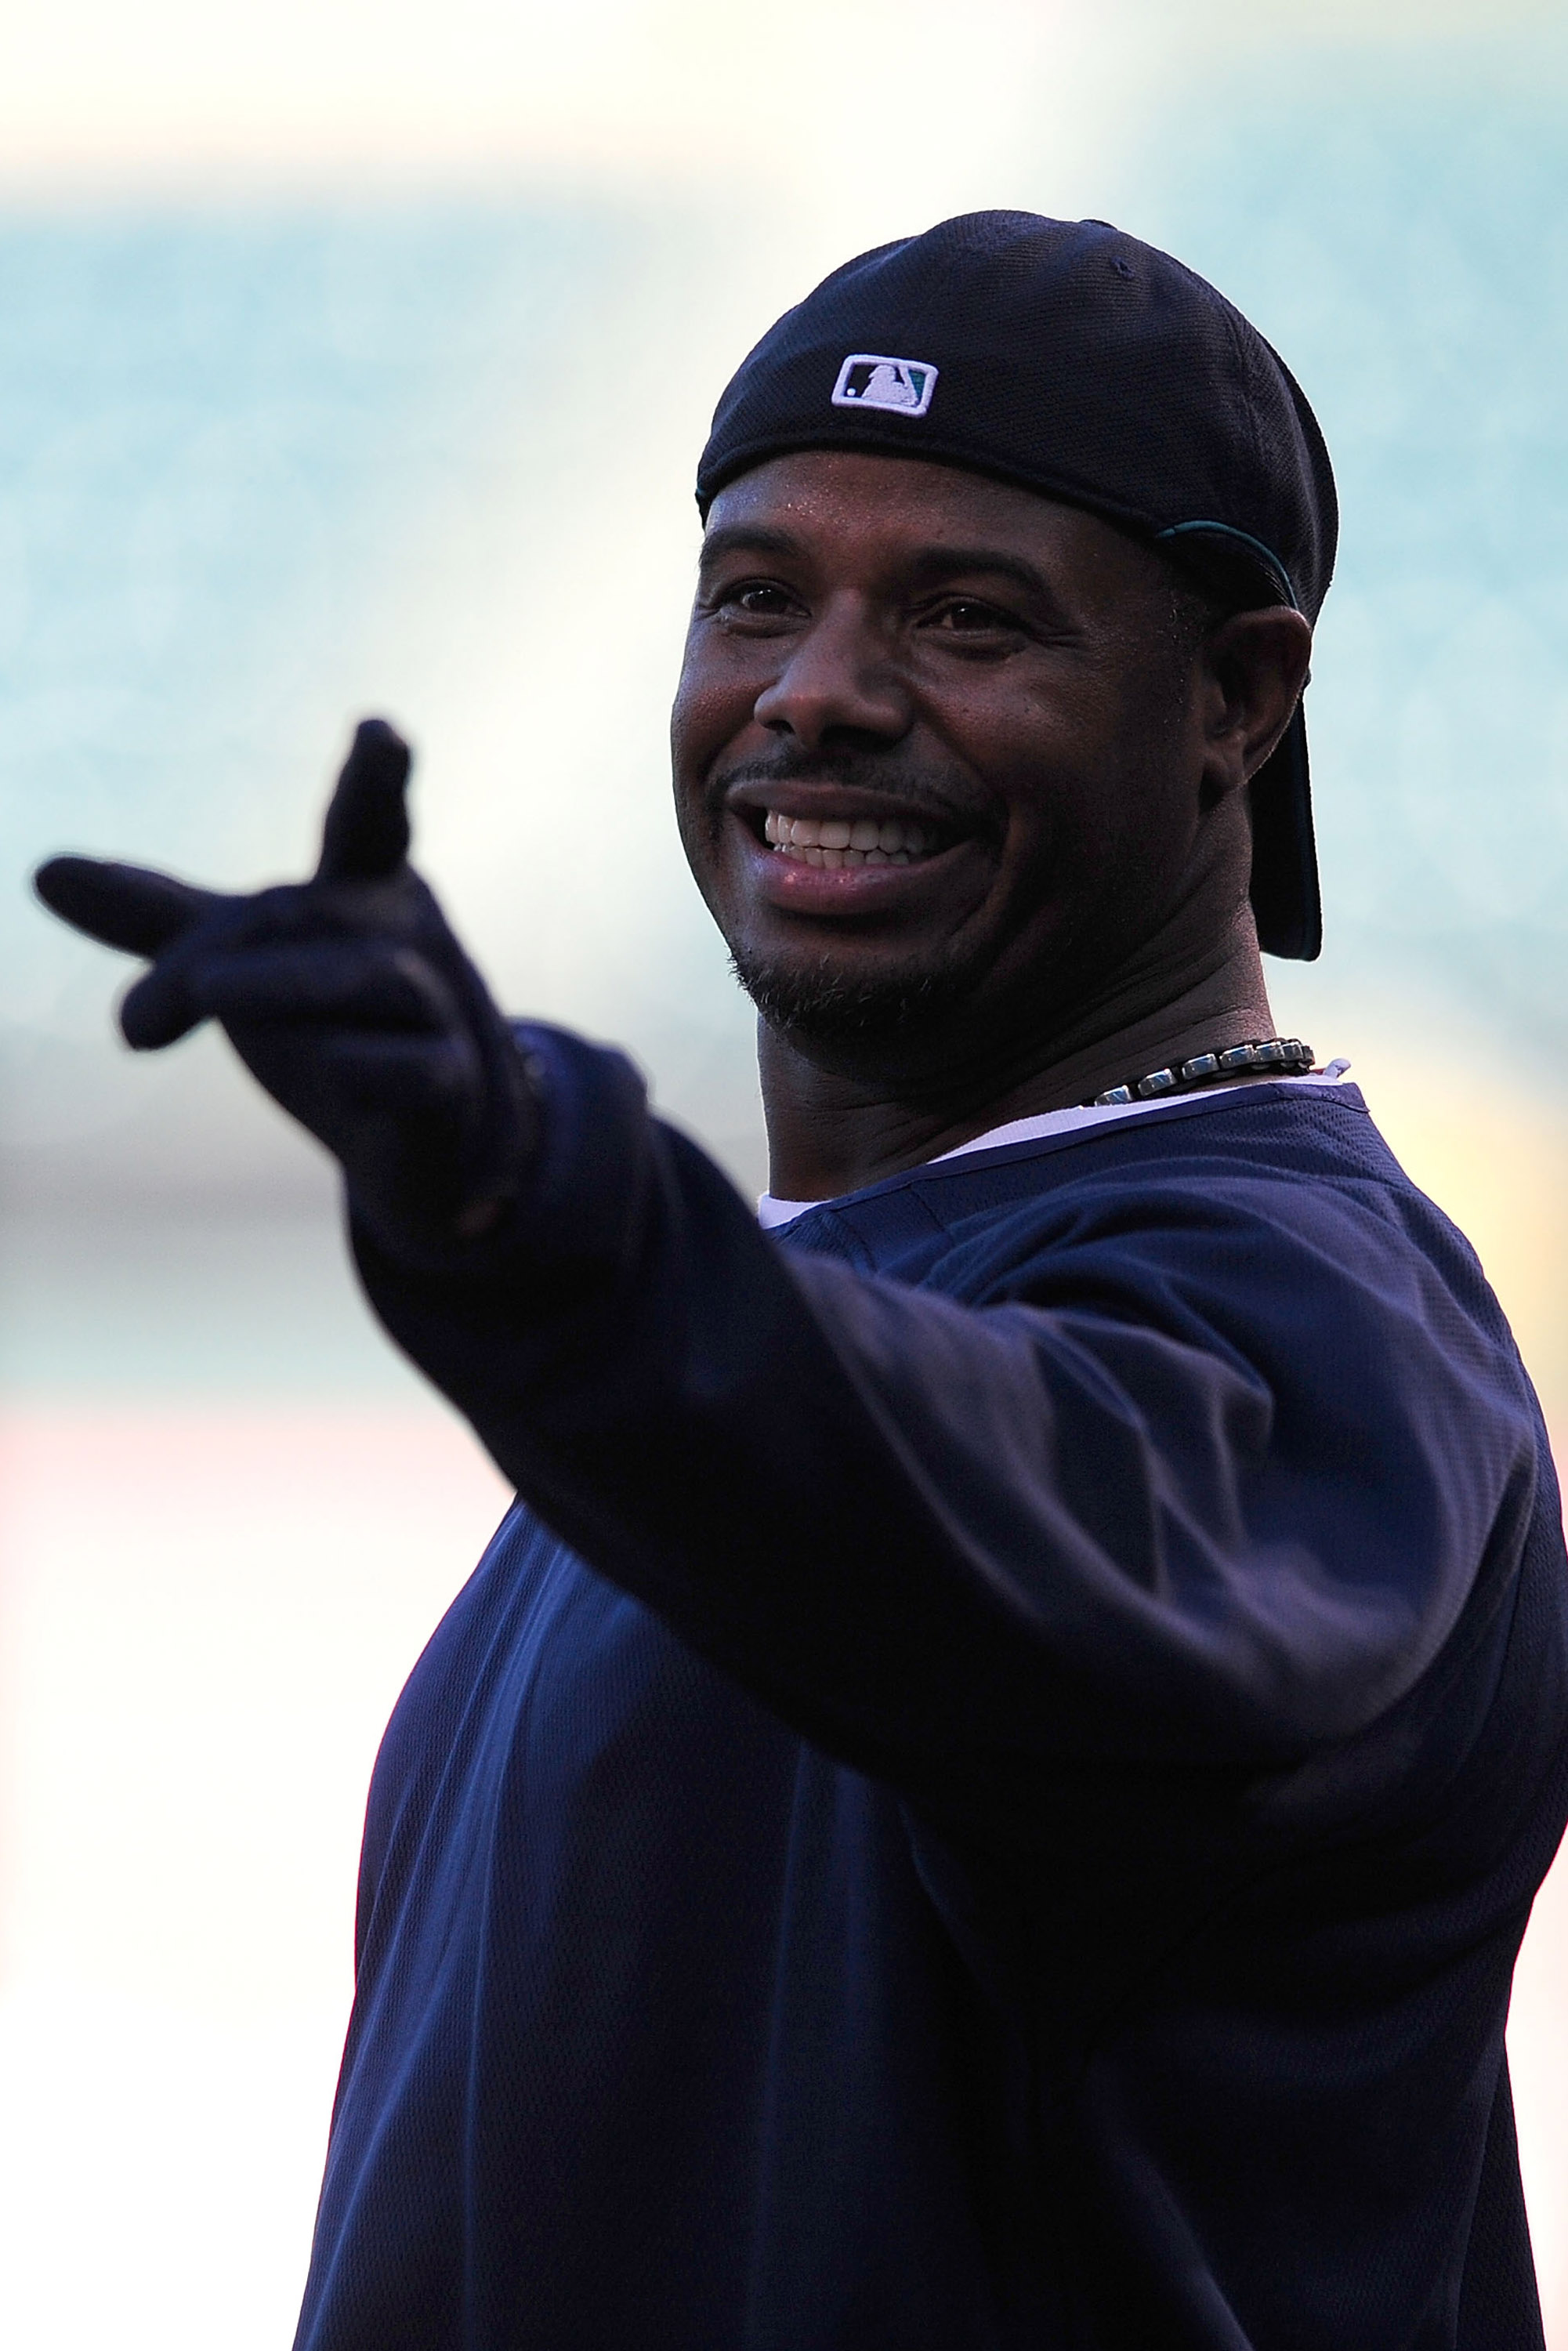 ANAHEIM, CA - SEPTEMBER 08:  Ken Griffey Jr. #24 of the Seattle Mariners jokes around with teammates during batting practice before the game against the Los Angeles Angels of Anaheim at Angel Stadium September 8, 2009 in Anaheim, California.  (Photo by Ja